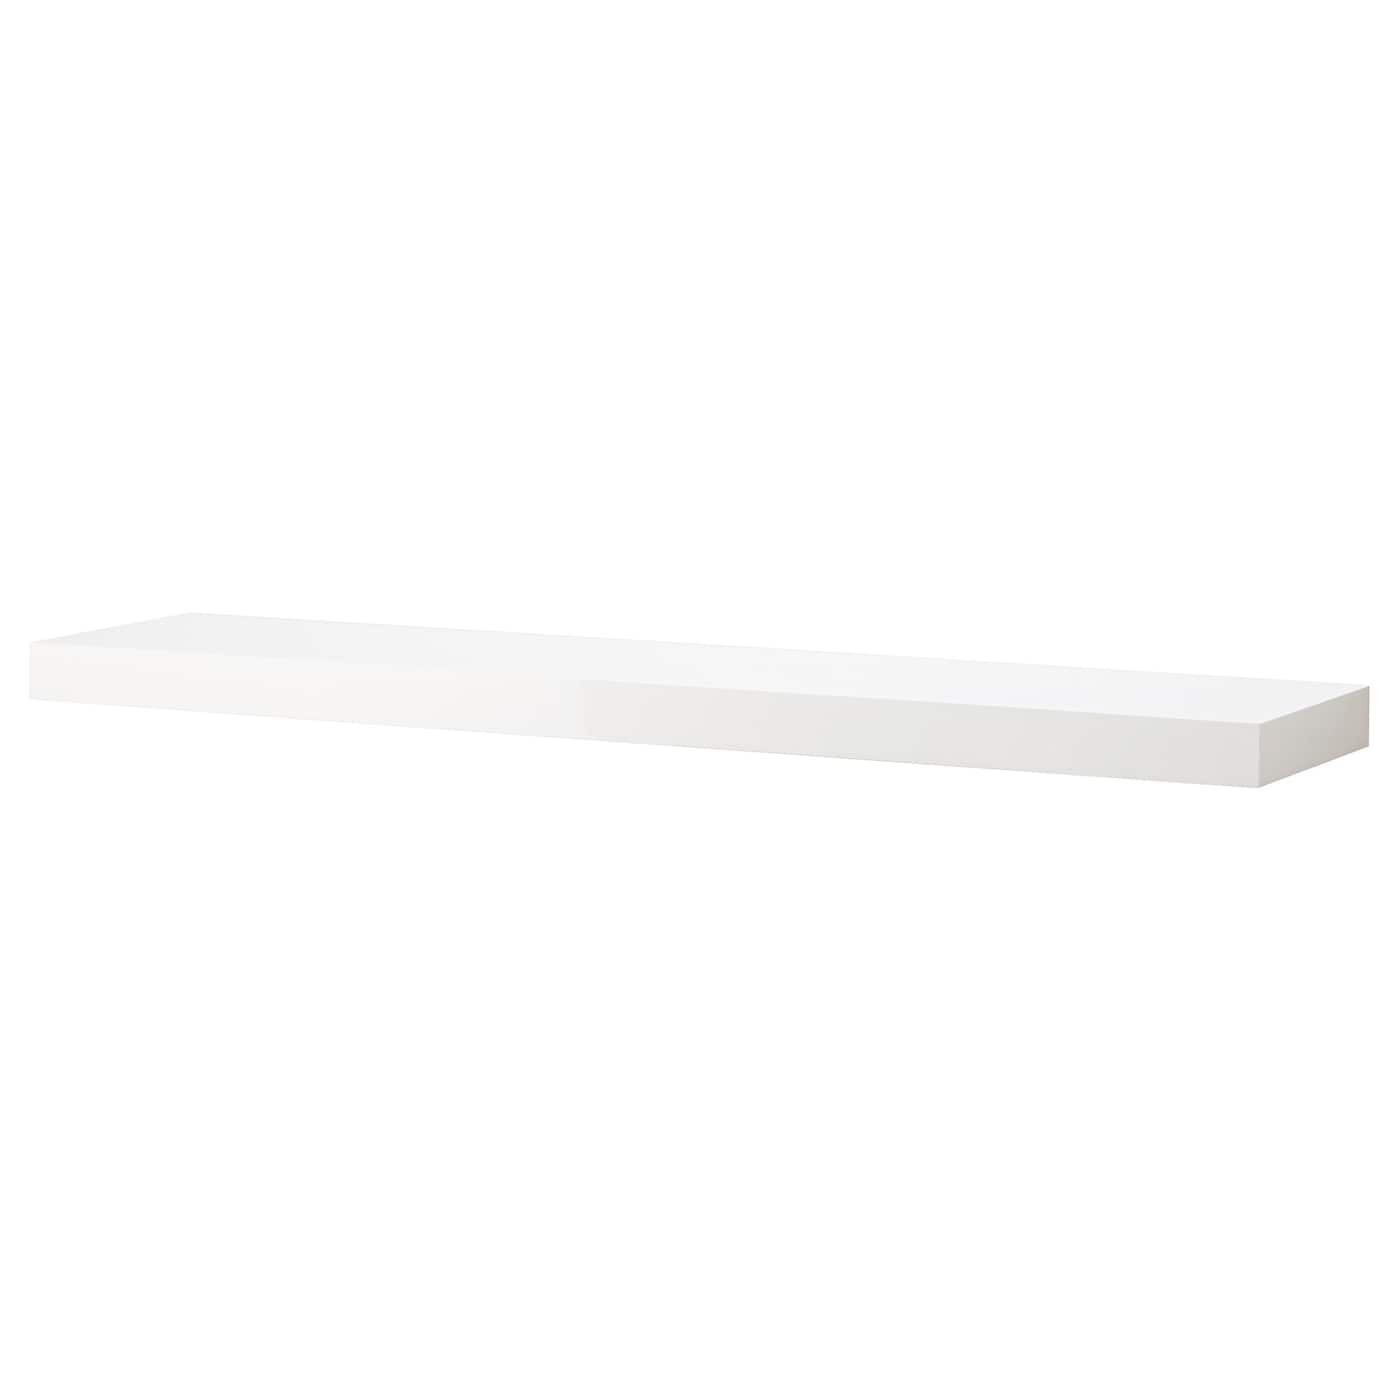 lack wall shelf white high gloss 110 x 26 cm ikea. Black Bedroom Furniture Sets. Home Design Ideas